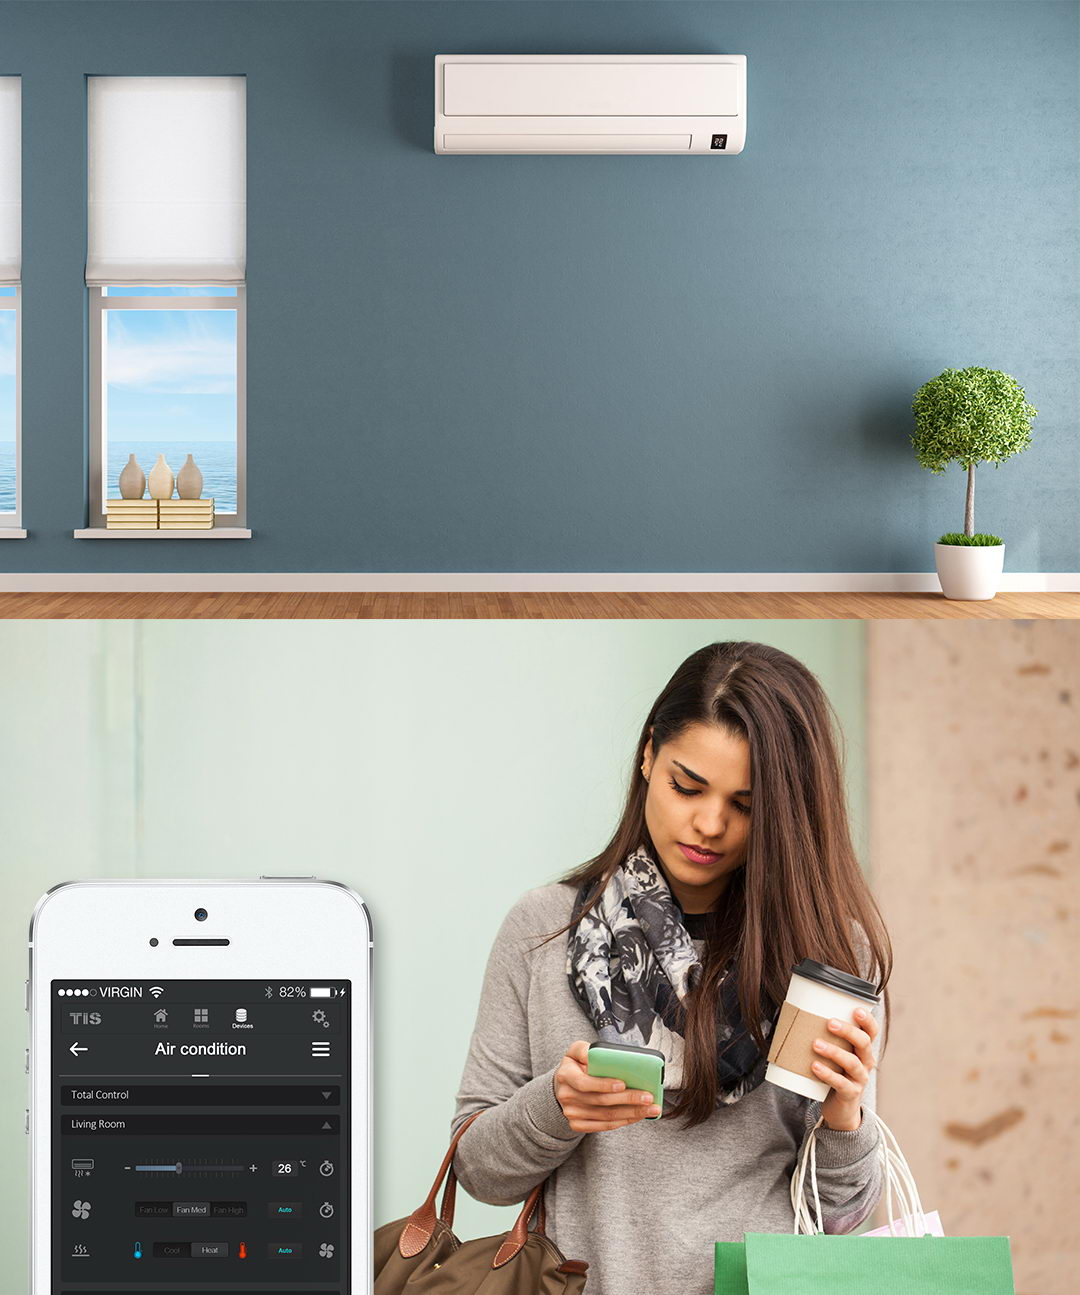 Control your room temperature remotely anywhere - TIS